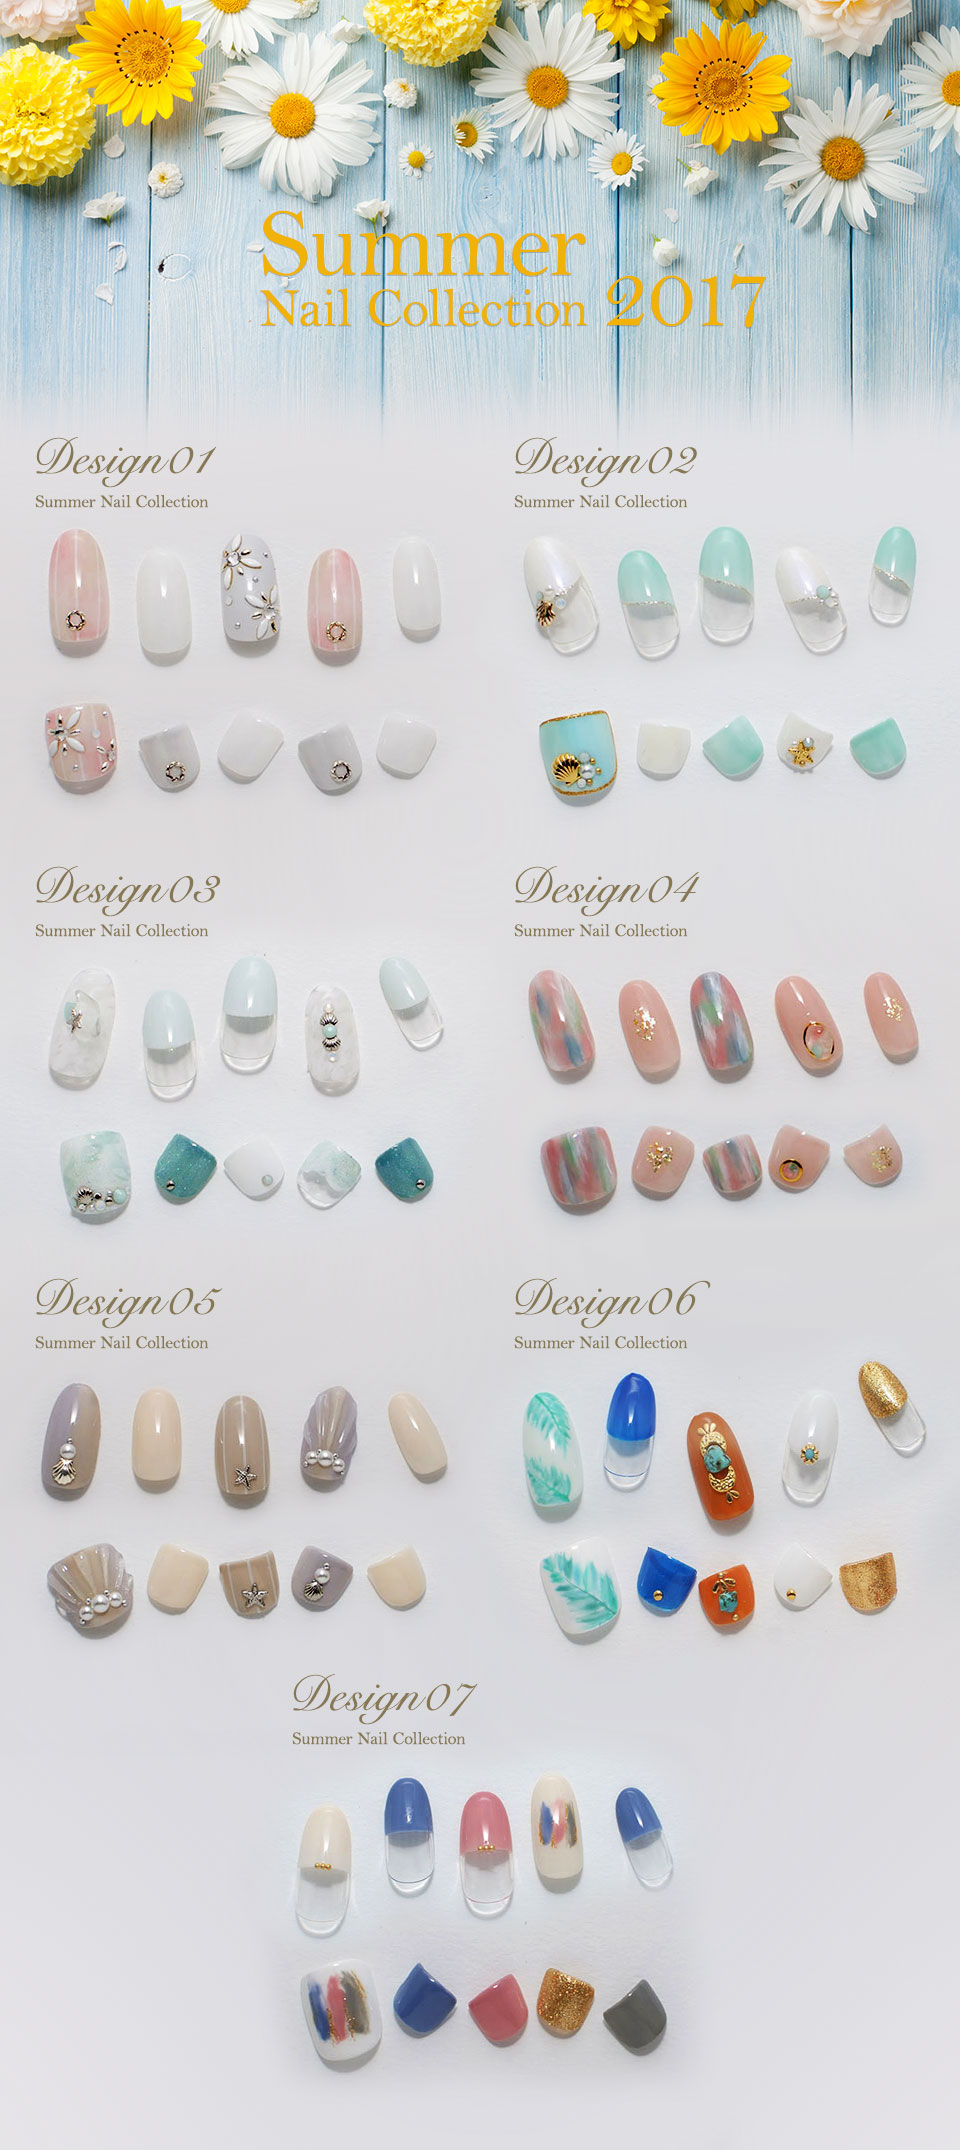 Summer Nail Collection 2017